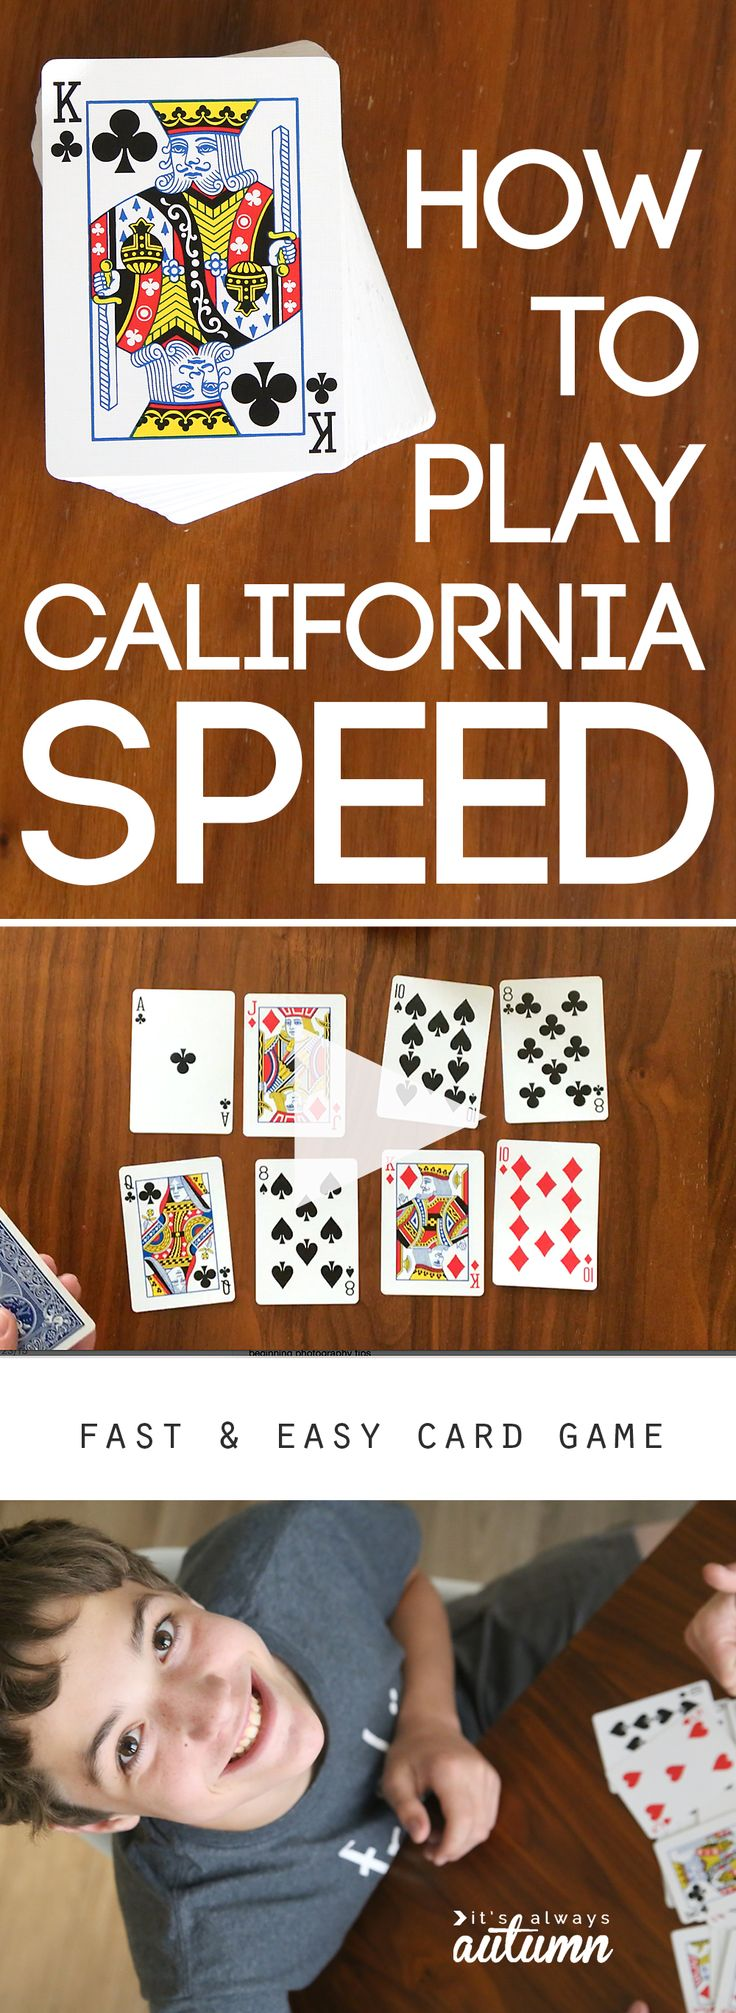 Super fun card game for kids and adults - it's extremely easy to learn and fast to play. Great summer family activity!